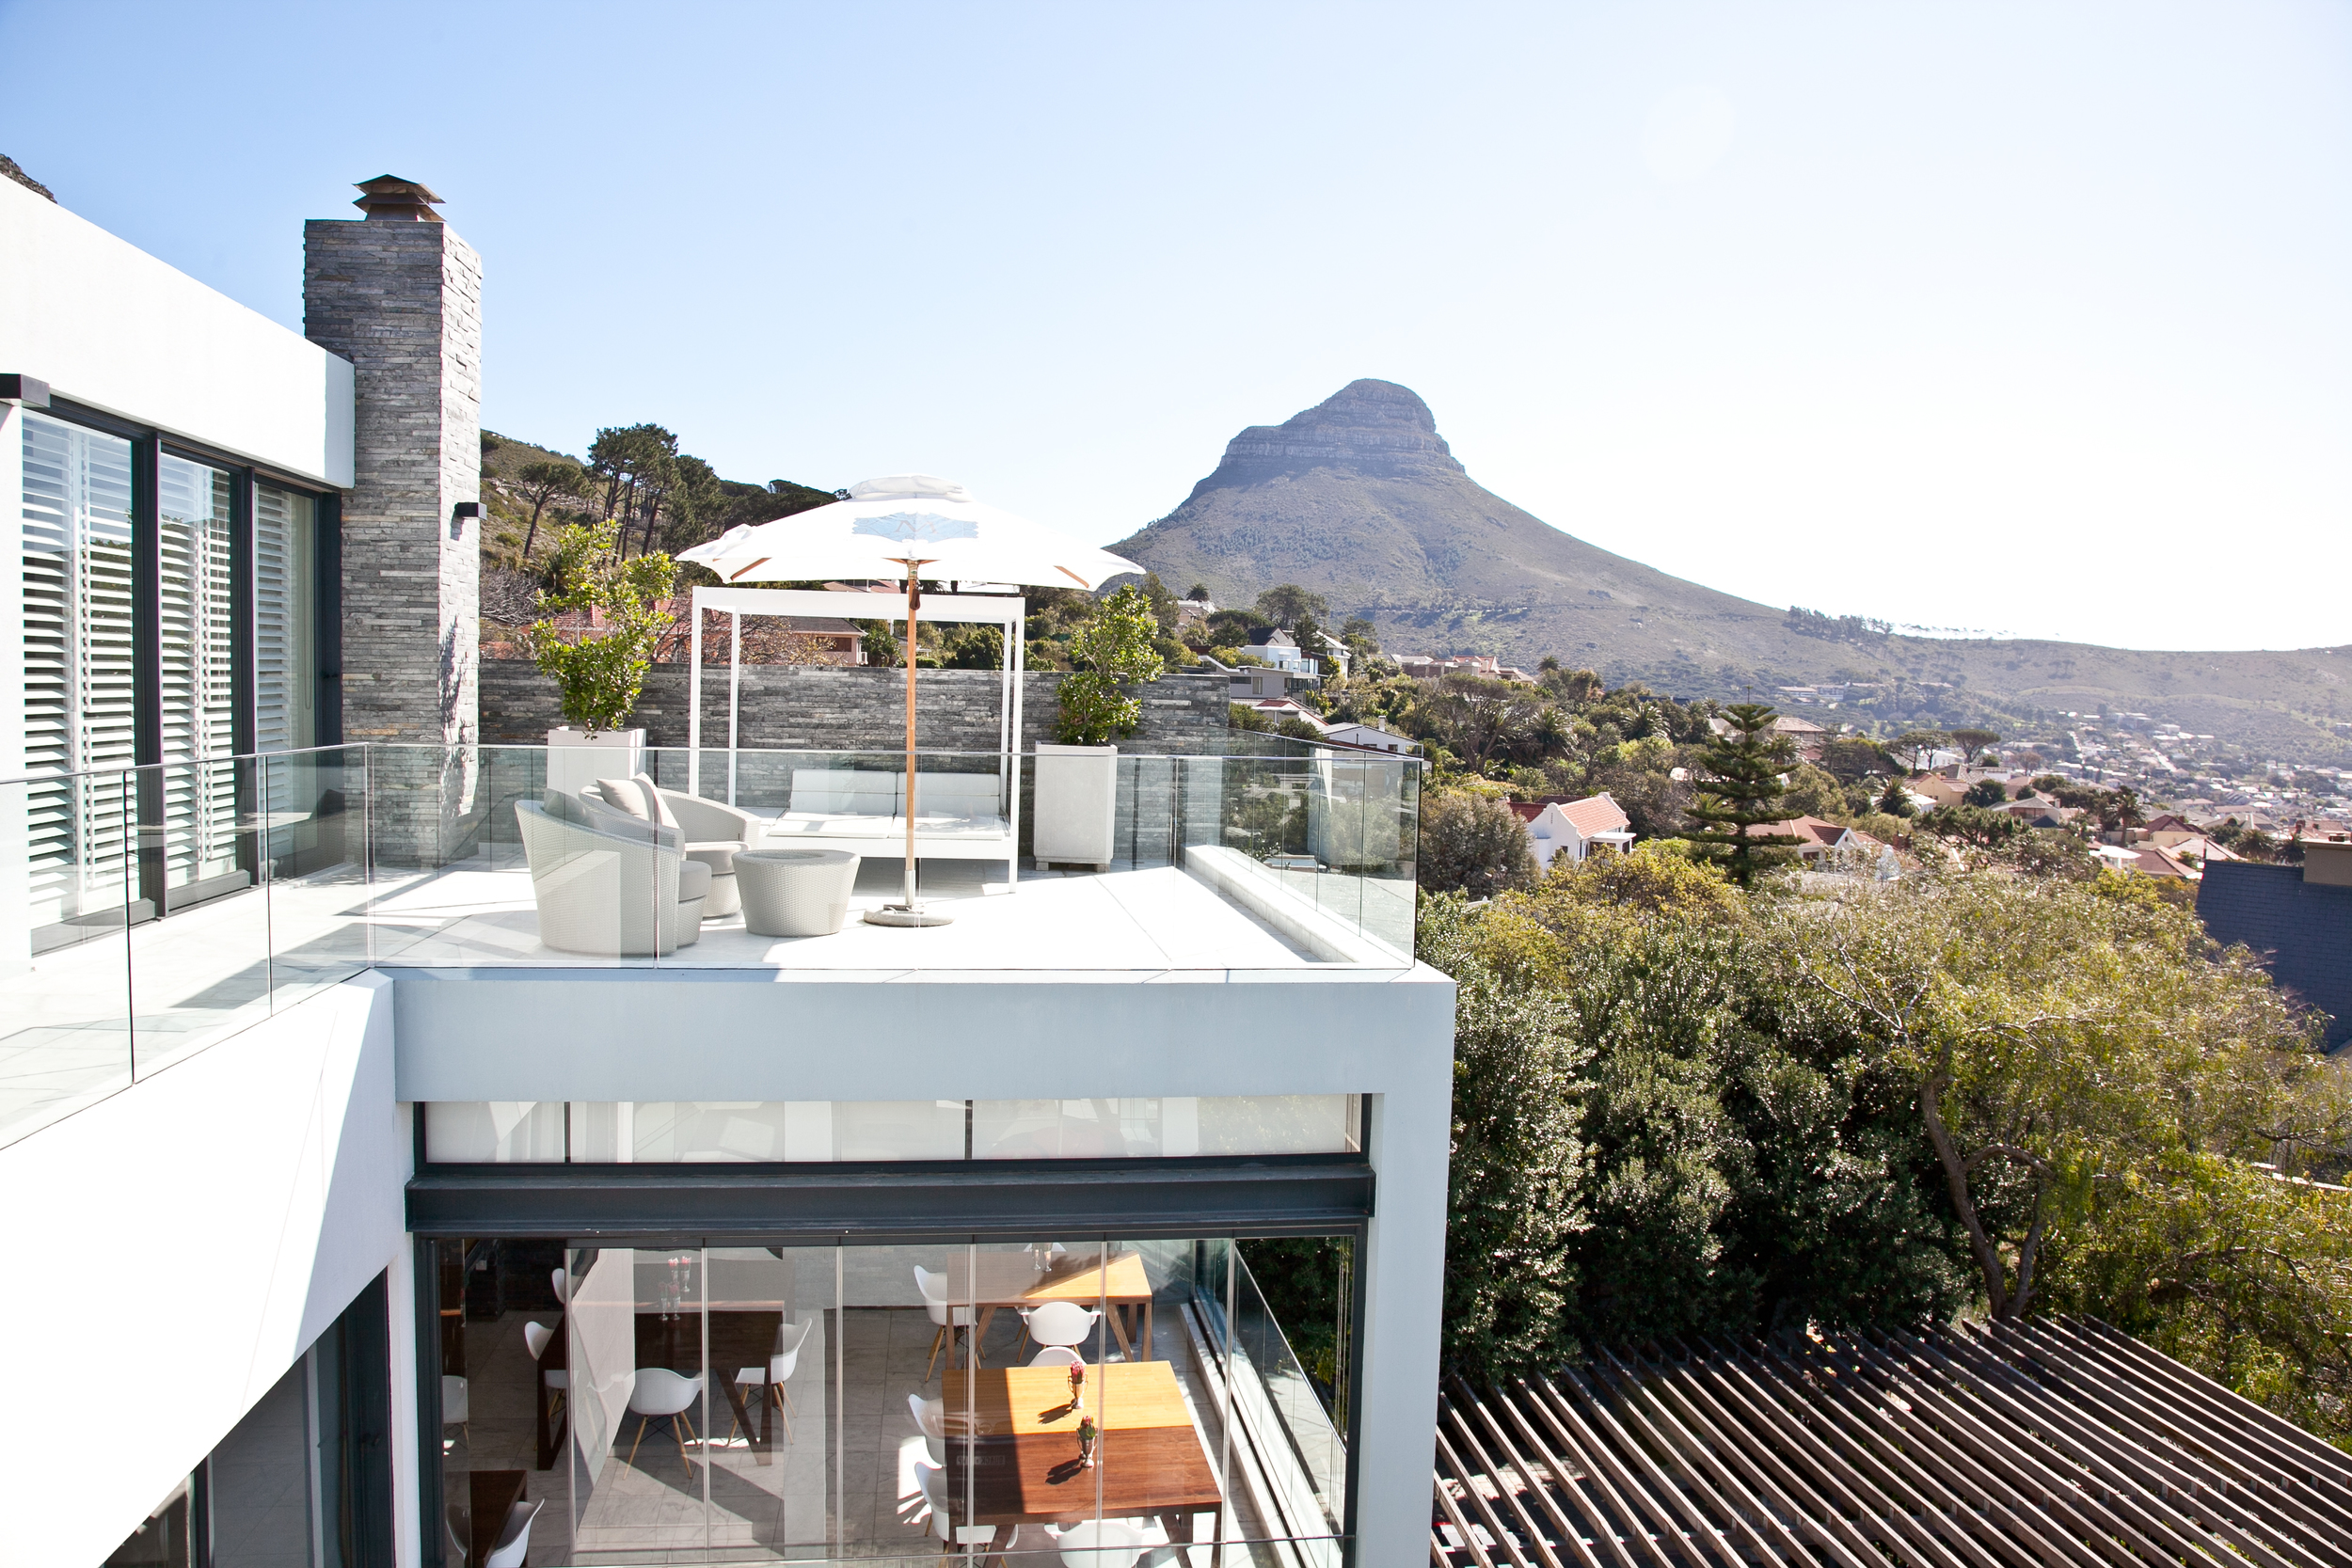 IMG_4562-cape-town-south-africa-mannabay-hotel.jpg